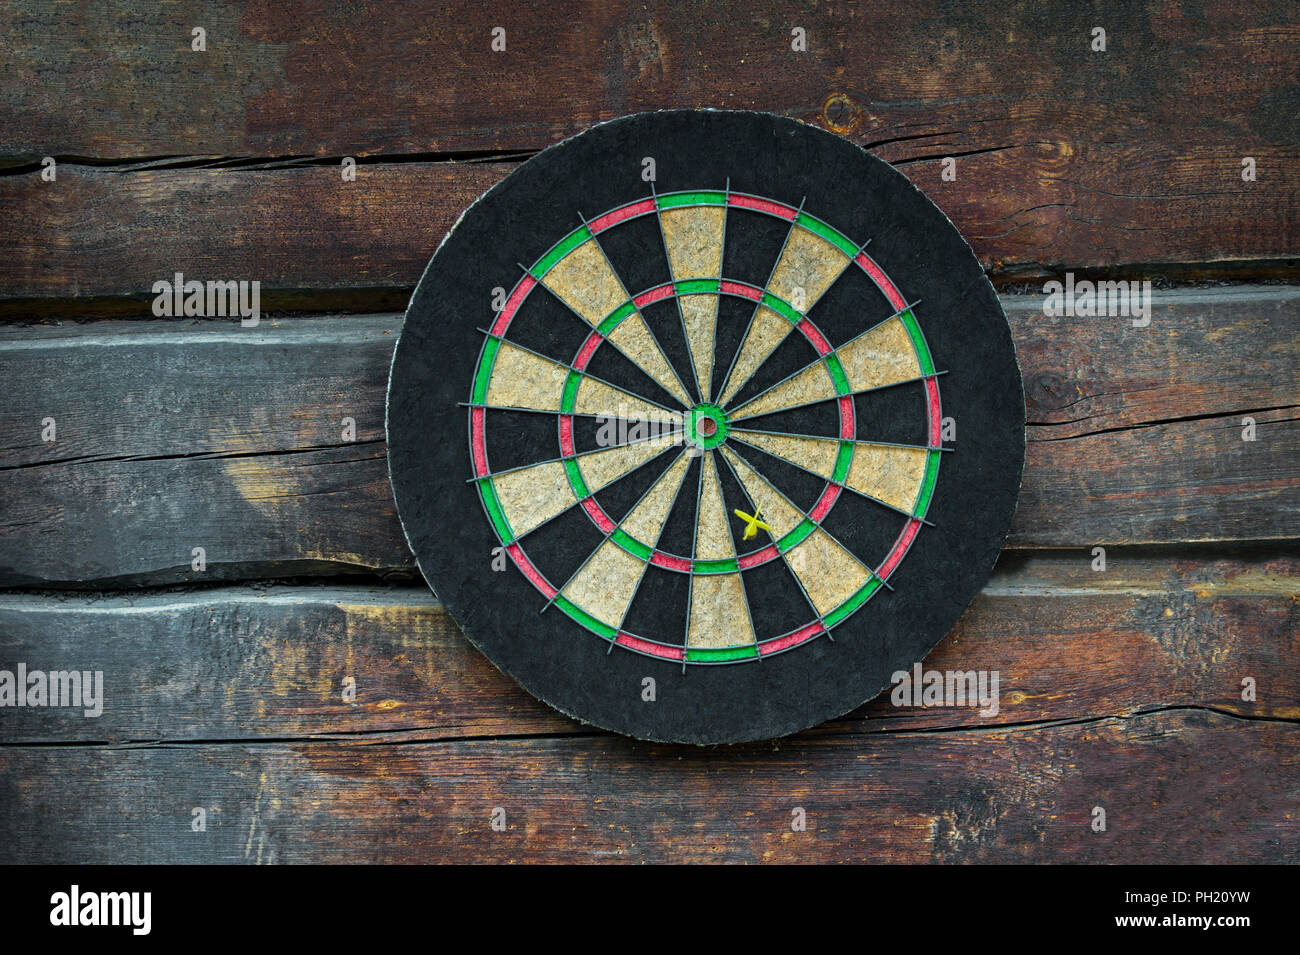 Dart board on old wooden table. Business concept. Stock Photo